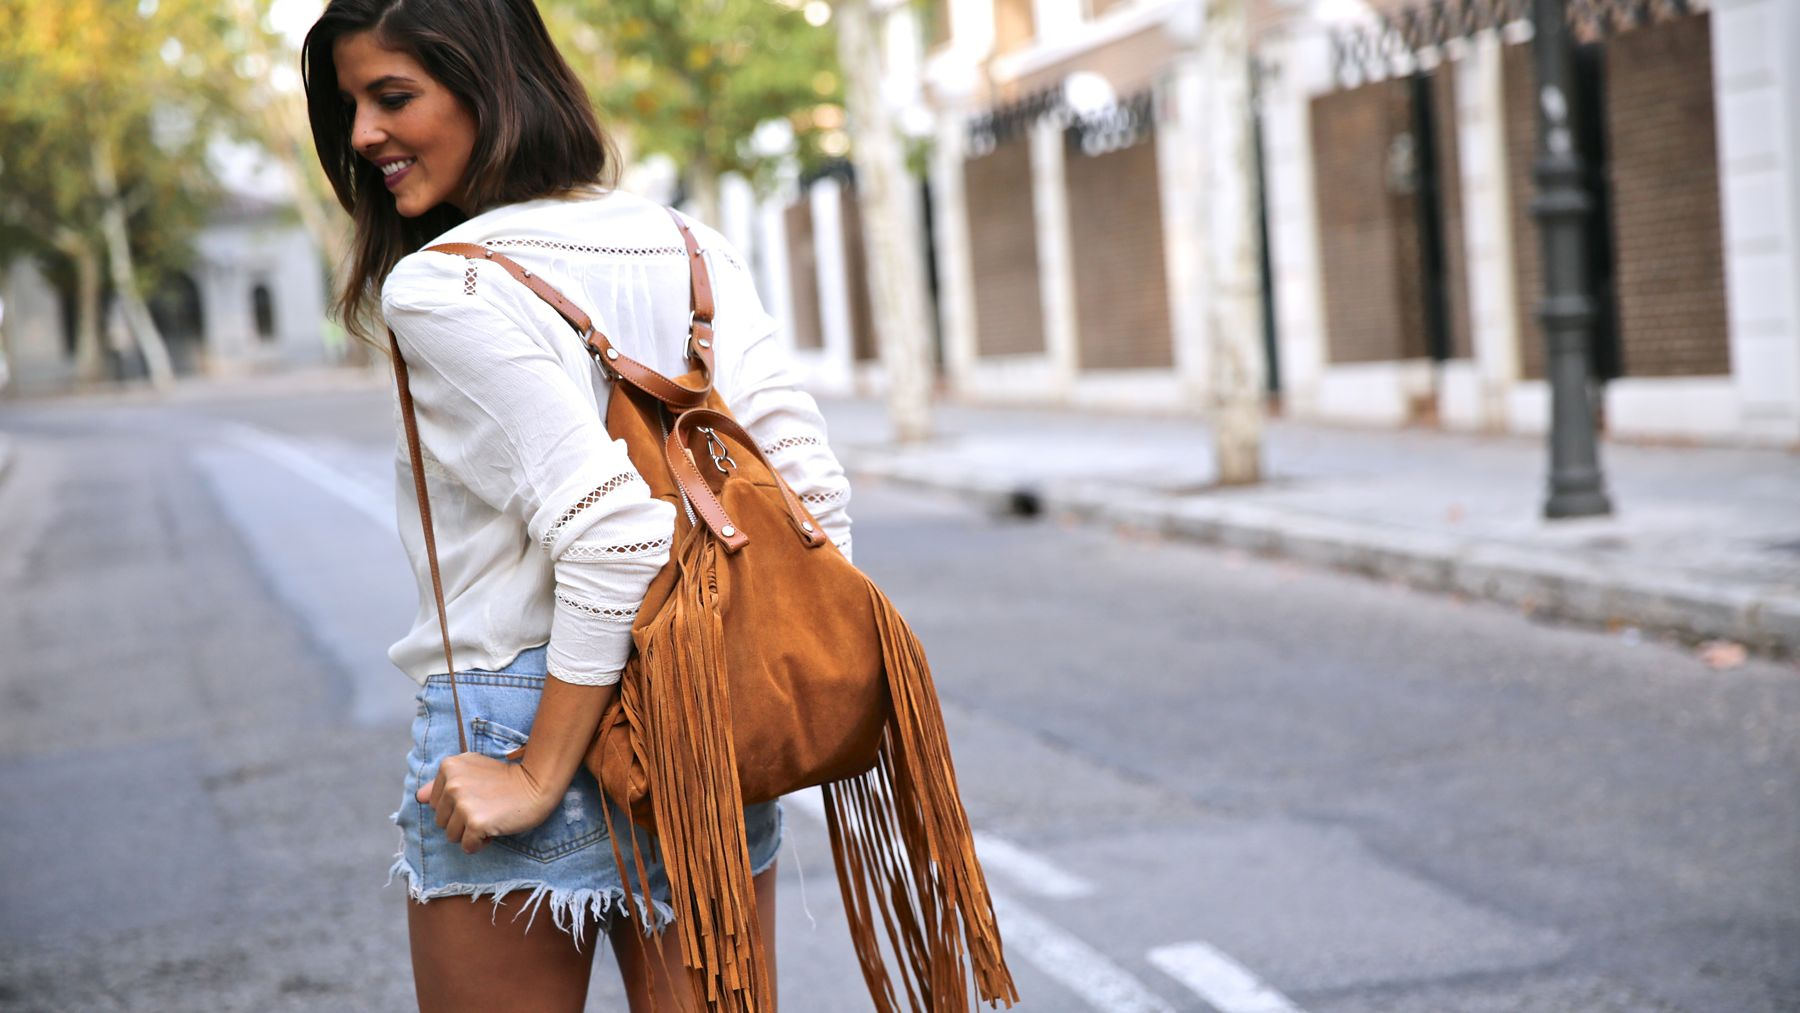 trendy_taste-look-outfit-street_style-ootd-blog-blogger-fashion_spain-moda_españa-boho-hippie-flecos-botines_camperos-cowboy_booties-mochila-backpack-blusa-camisa-denim-shorts-vaqueros-4